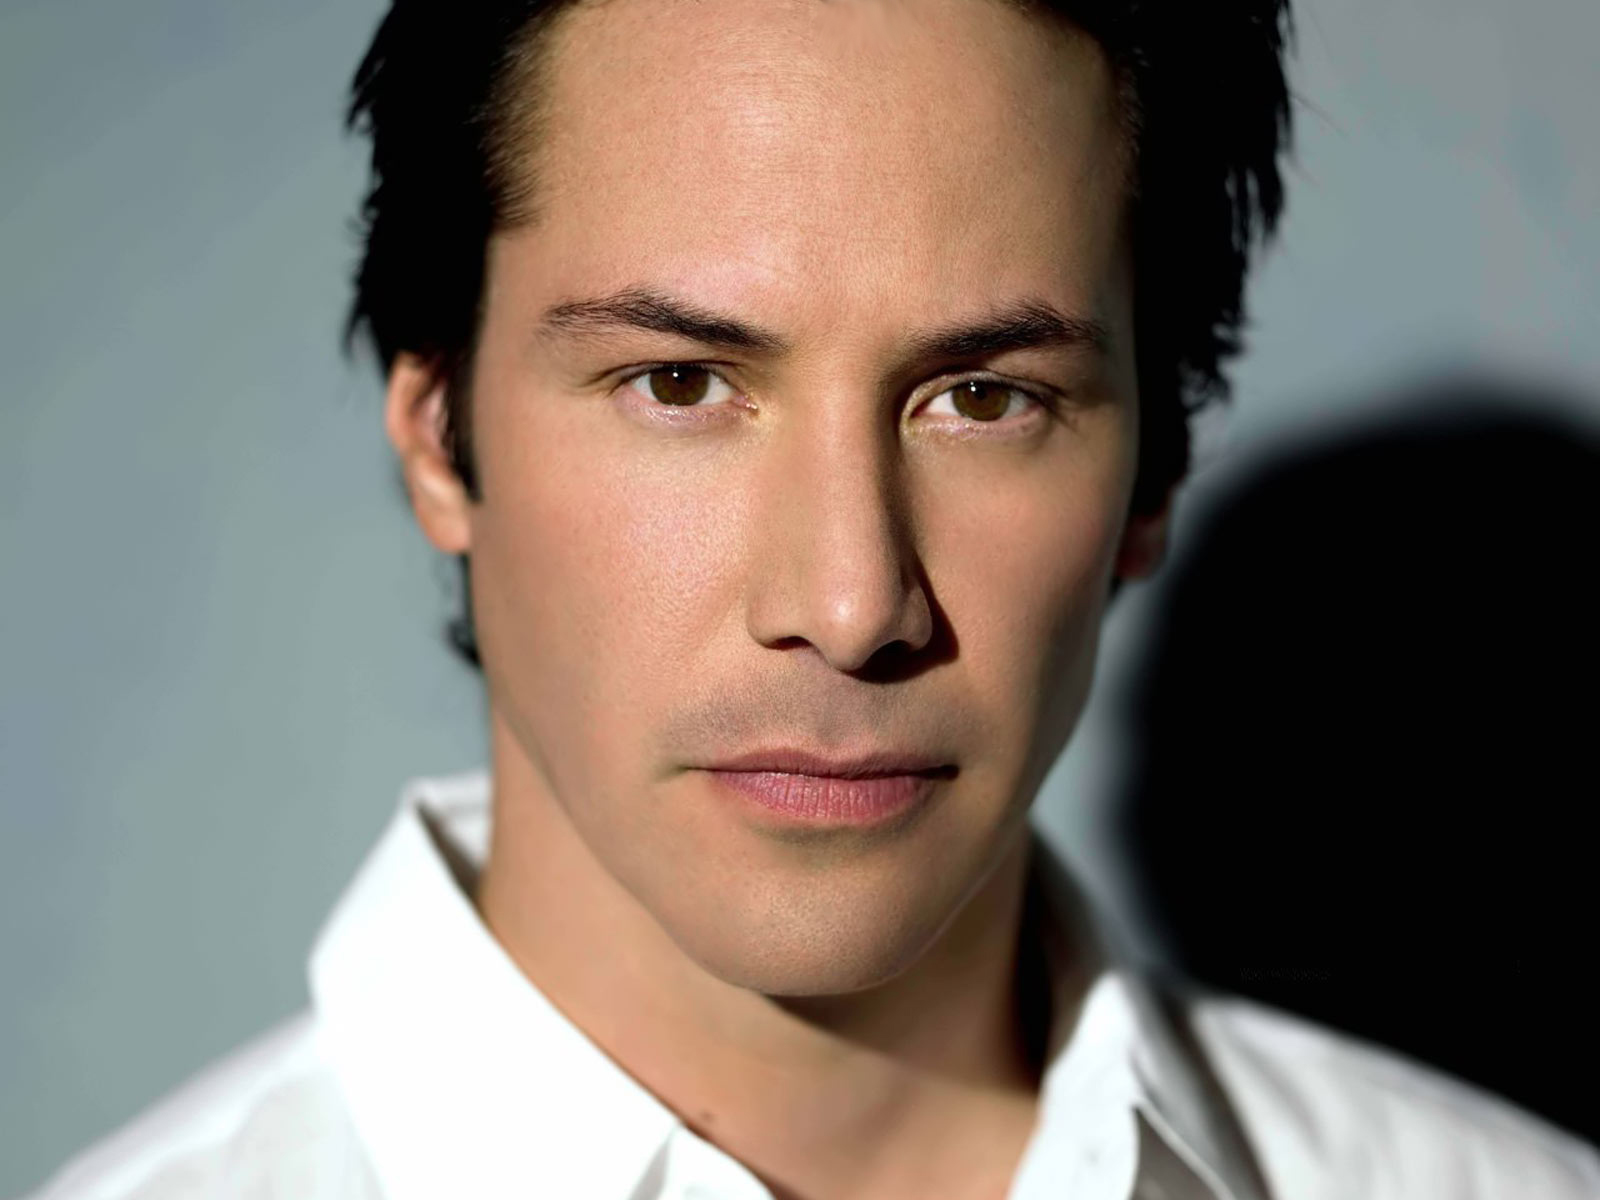 Keanu Reeves Quot The Best Actor Ever Quot Profile Biography And